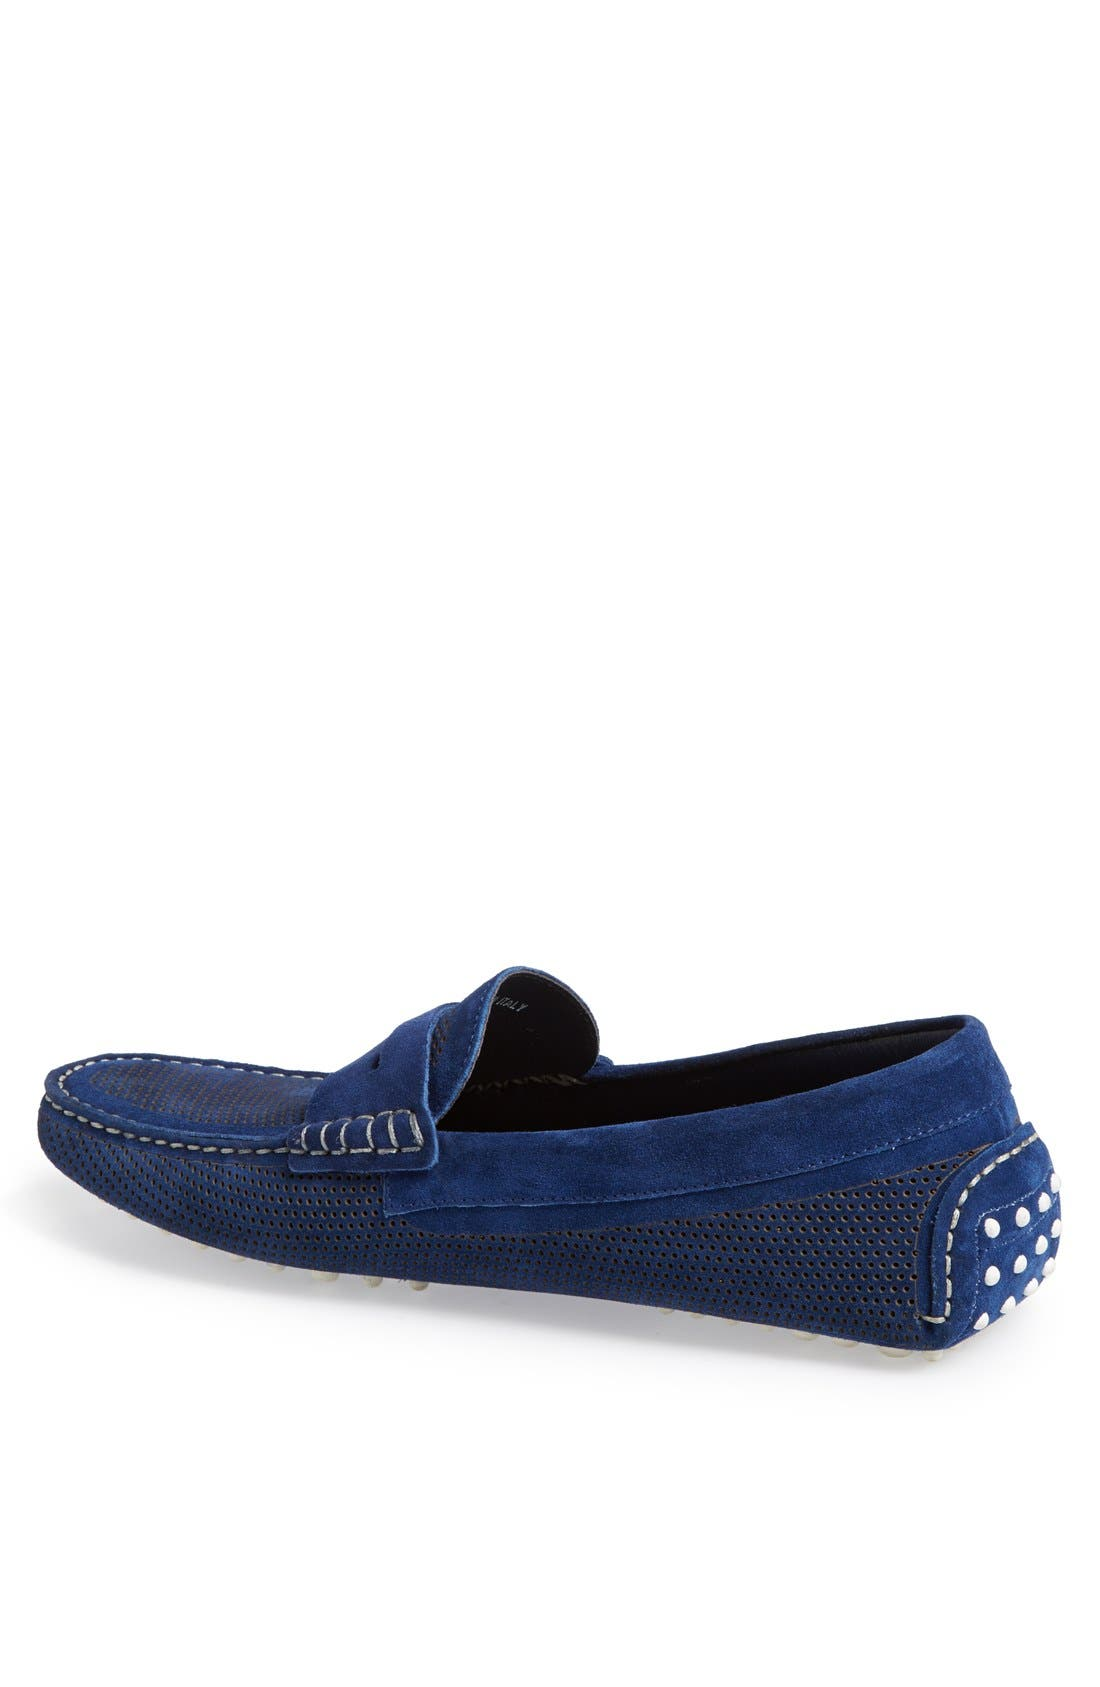 Alternate Image 2  - Canali Perforated Suede Driving Shoe (Men)